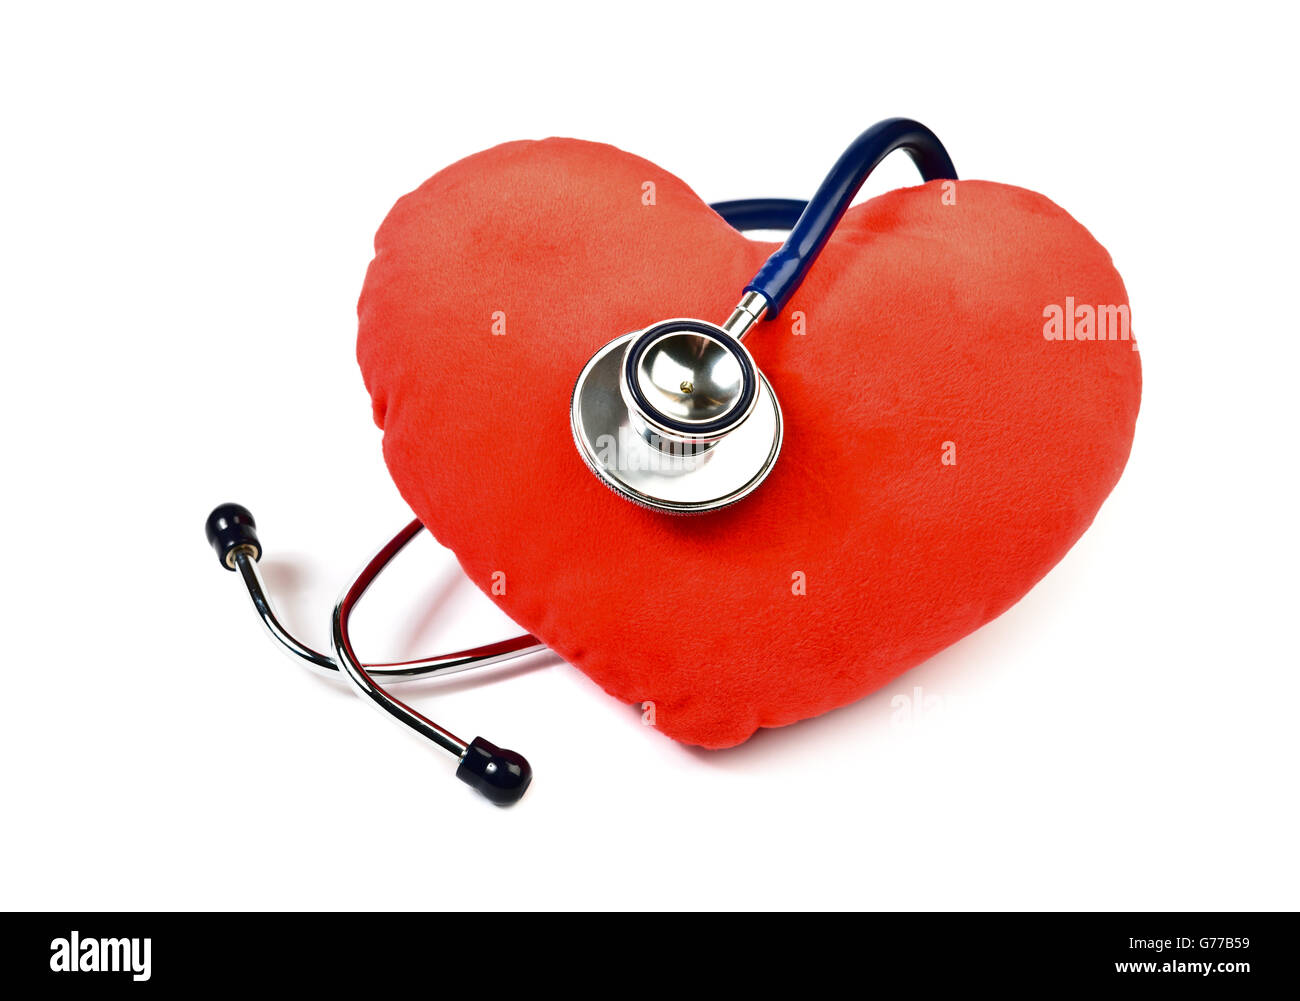 Red heart and stethoscope on white - Stock Image